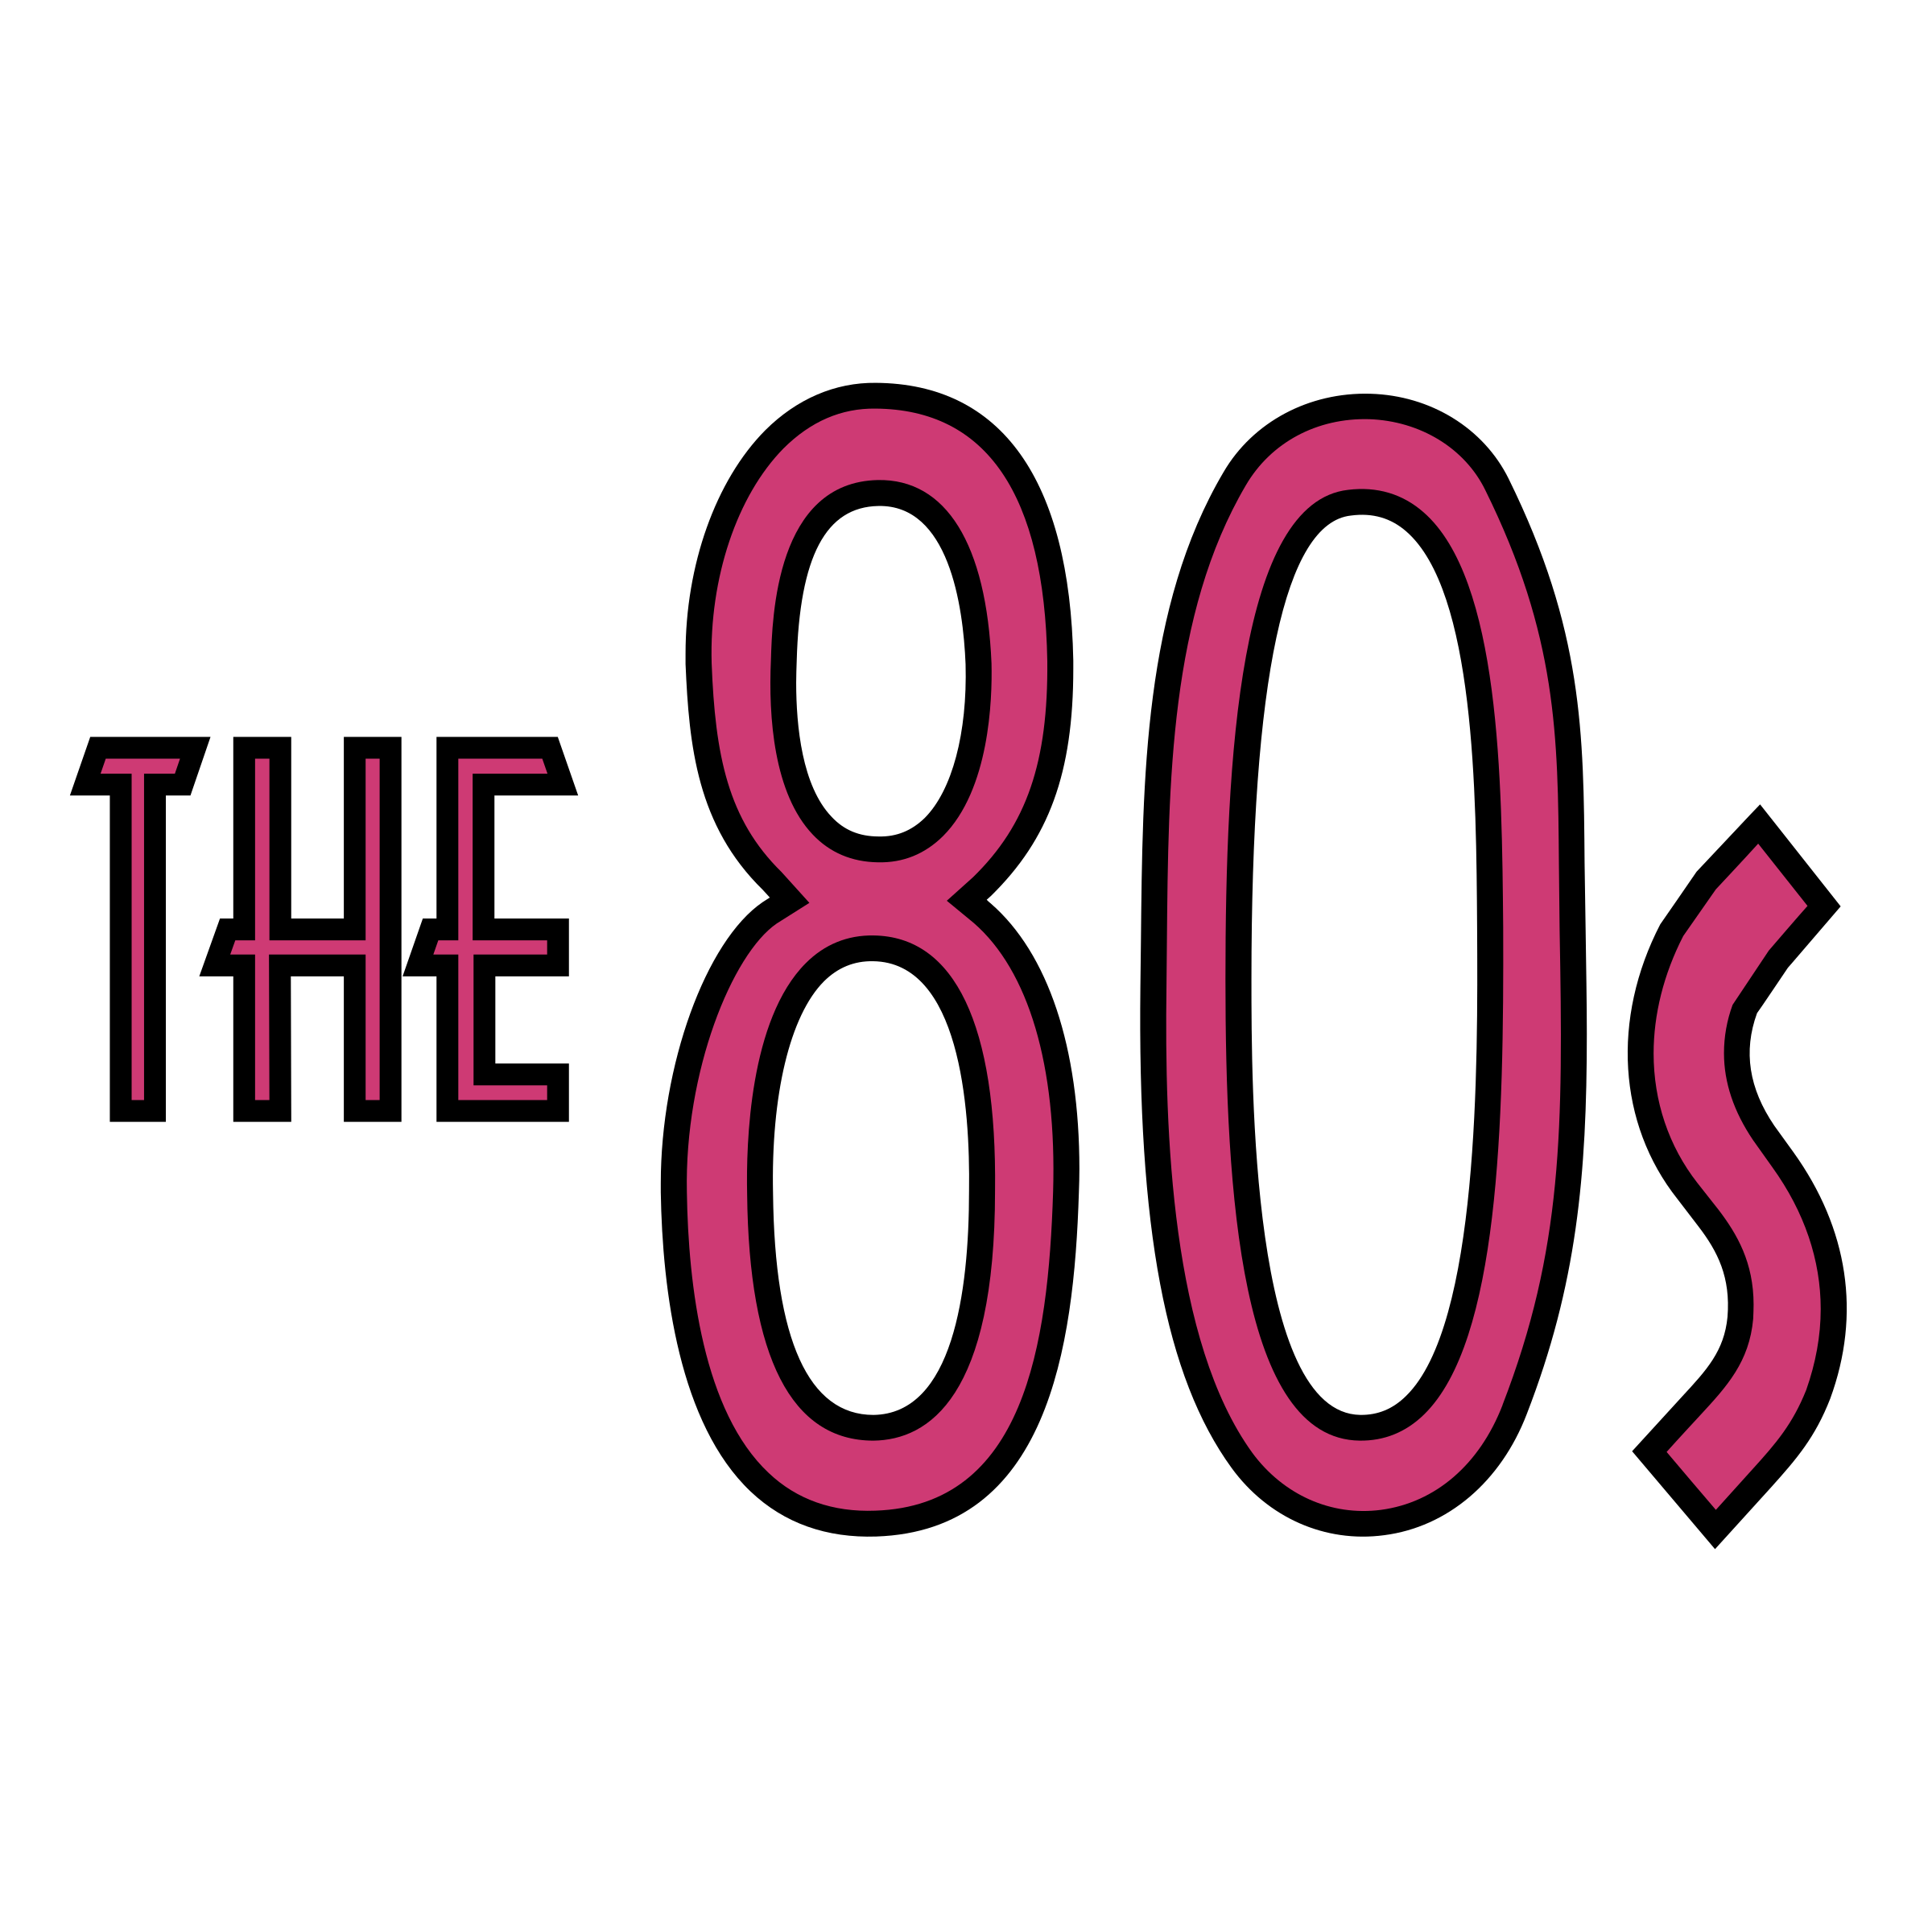 80s png. The s logo transparent